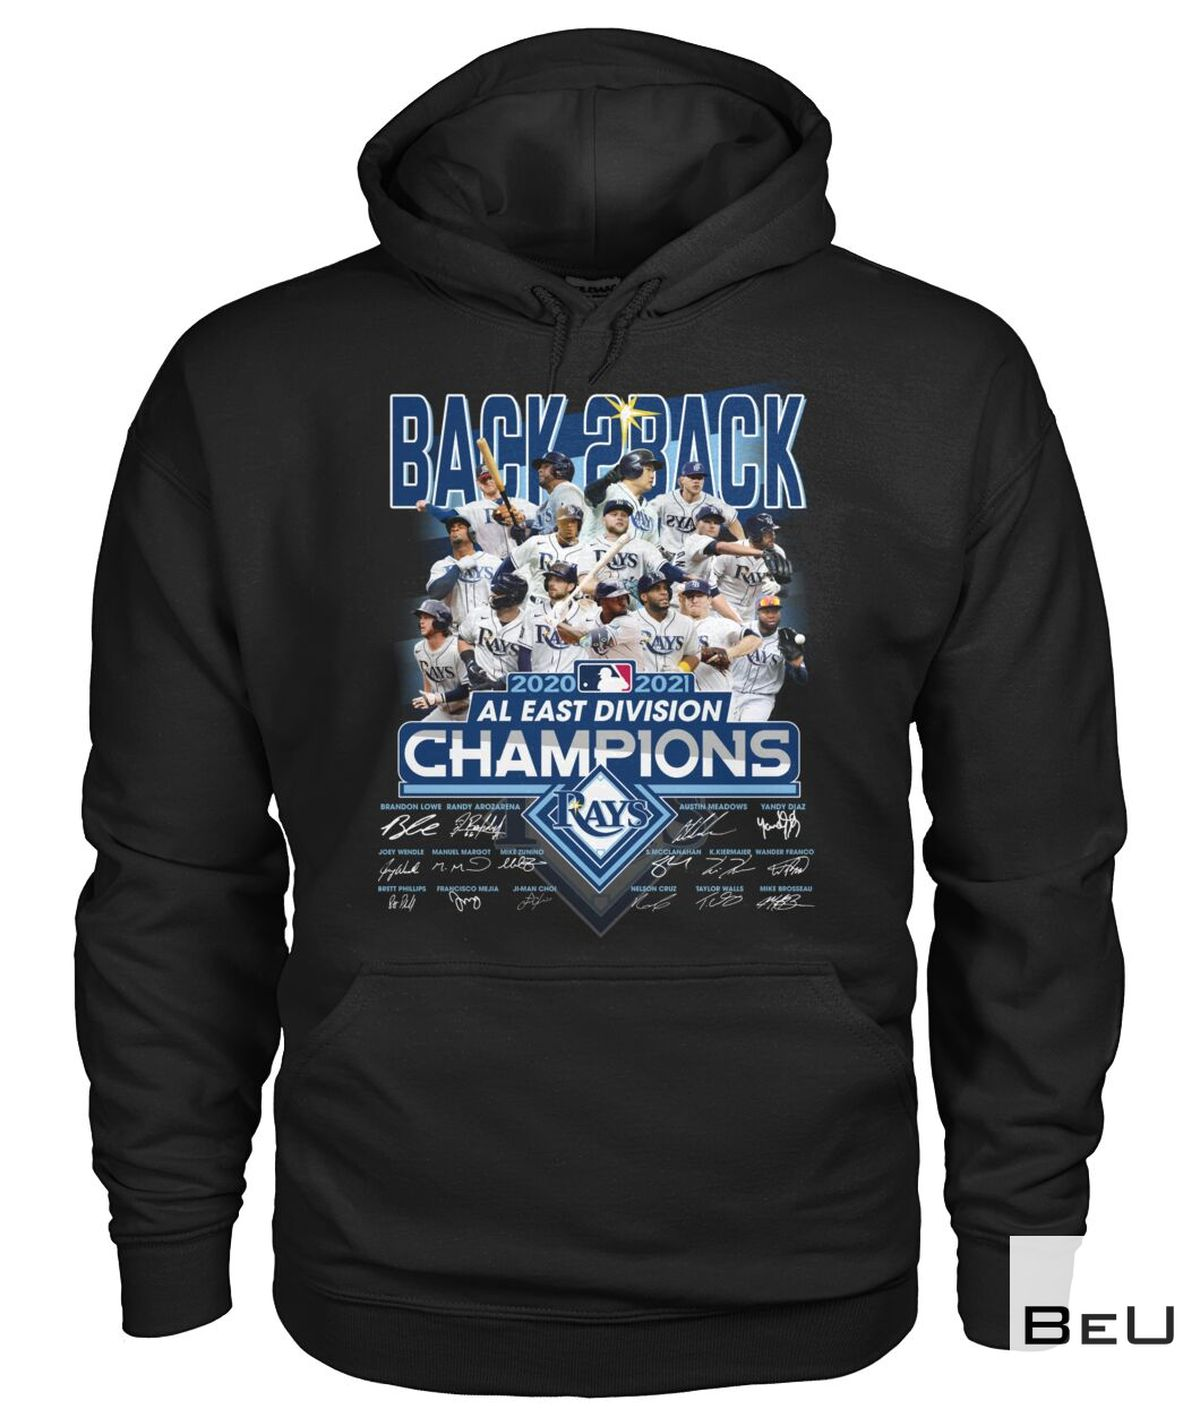 All Over Print Tampa Bay Rays Back 2 Back Al East Division Champions Shirt